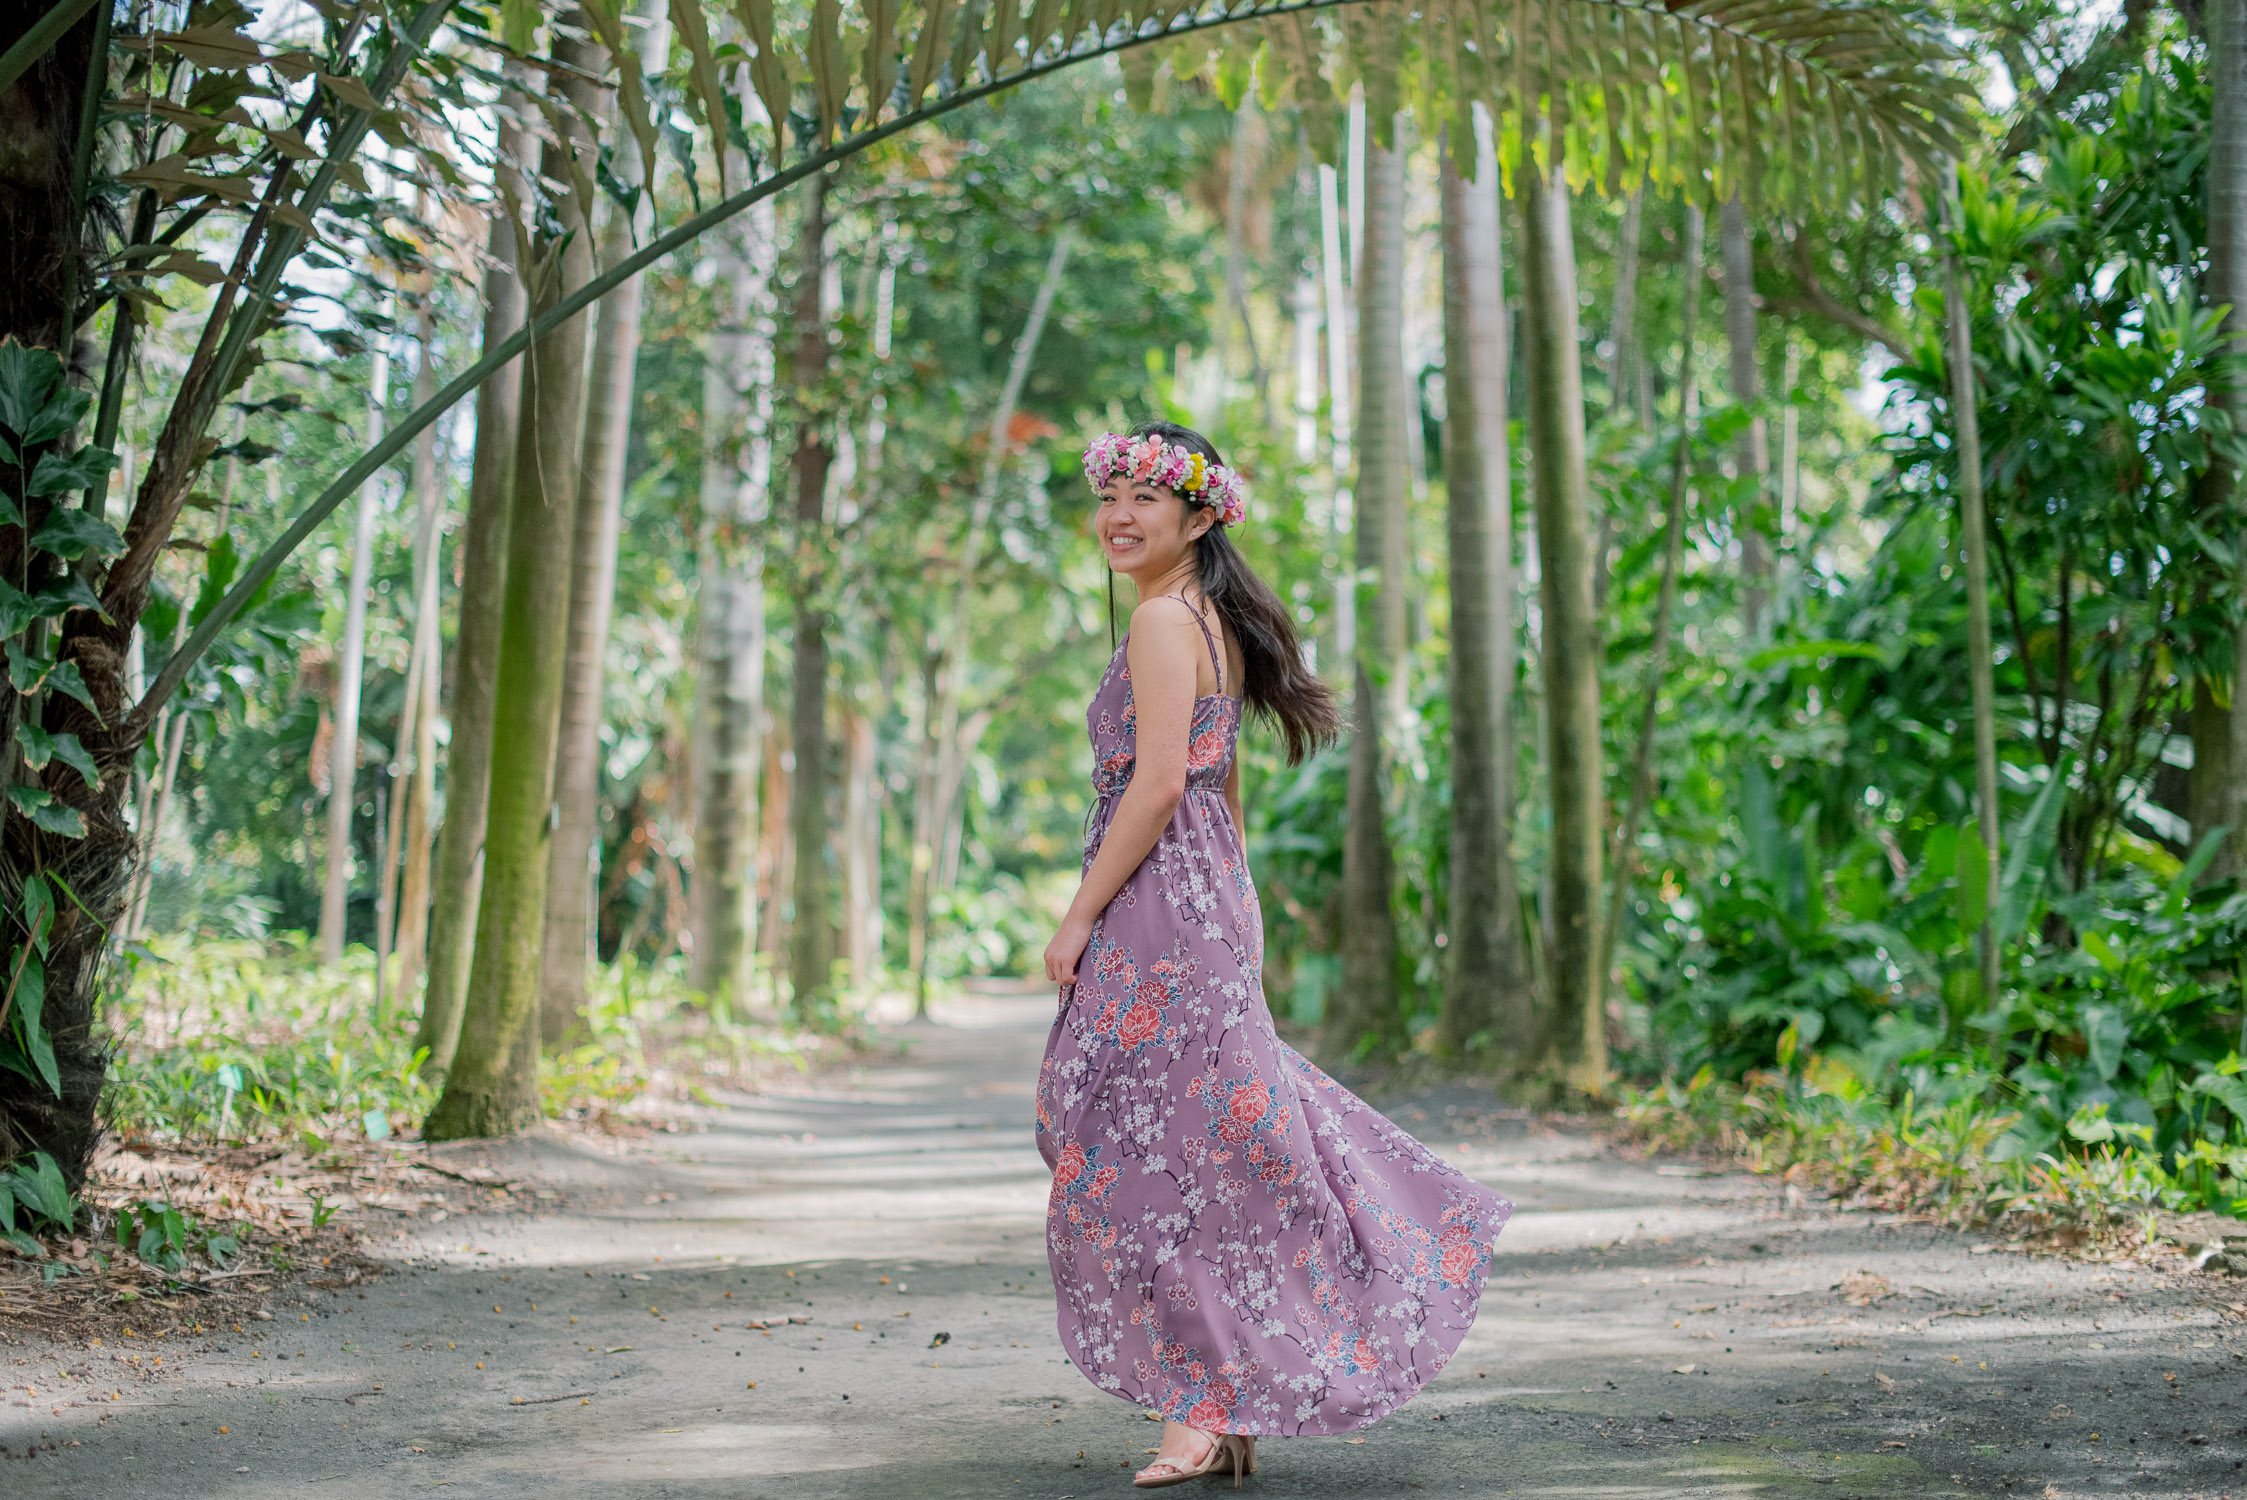 Walking around Foster Botanical Garden- high school girl in purple dress and haku lei